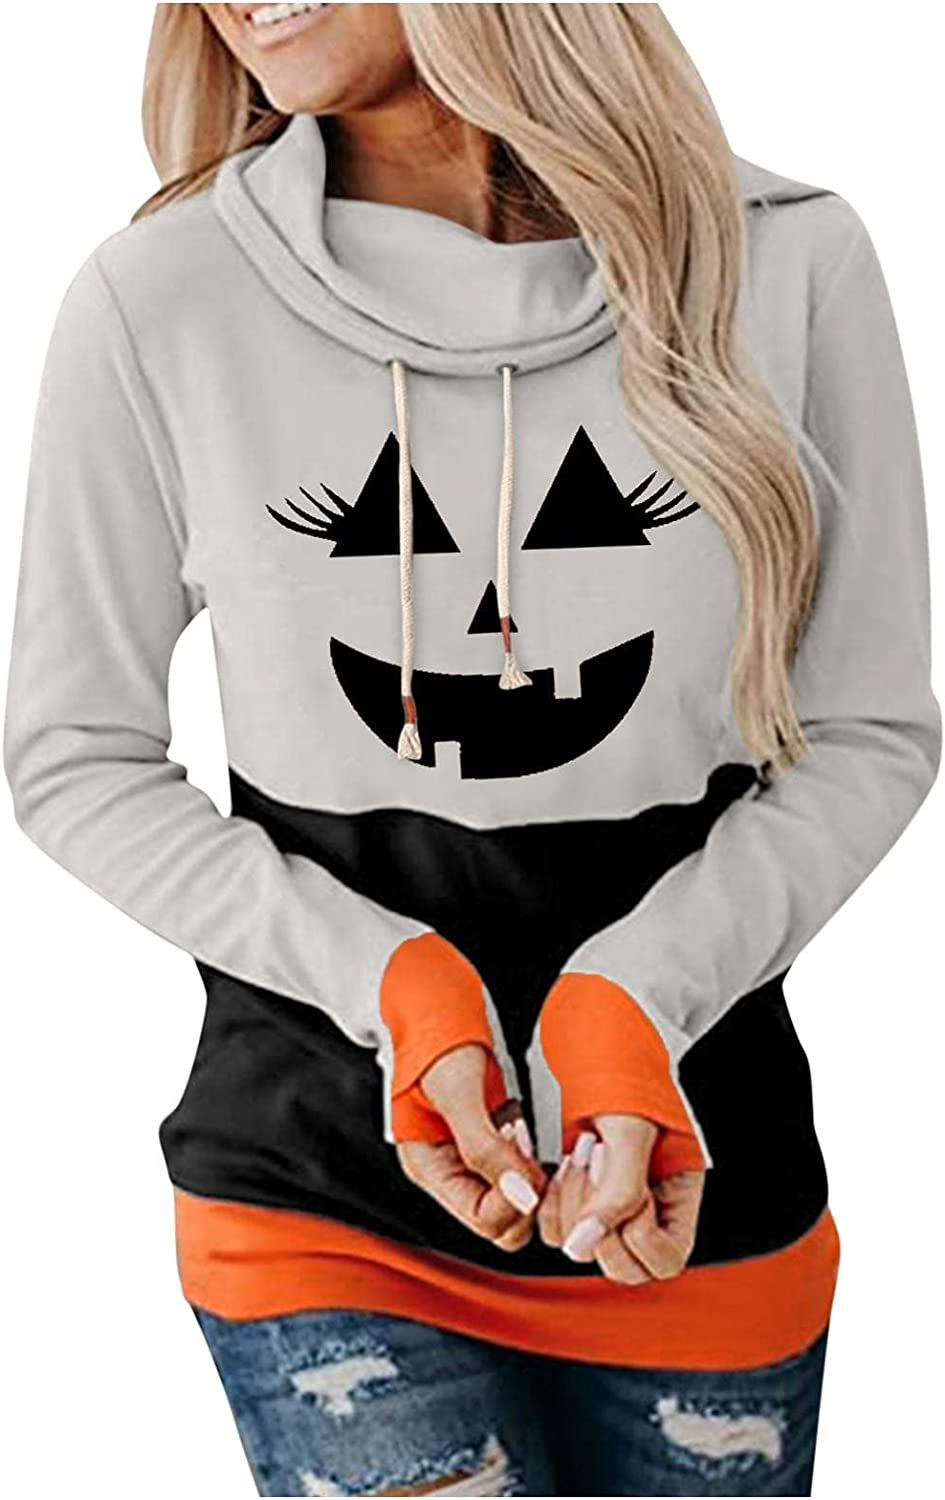 UOCUFY Hoodies for Women, Womens Halloween Funny Graphic Cowl Neck Long Sleeve Hoodies Pullover Casual Sweatshirts Tops